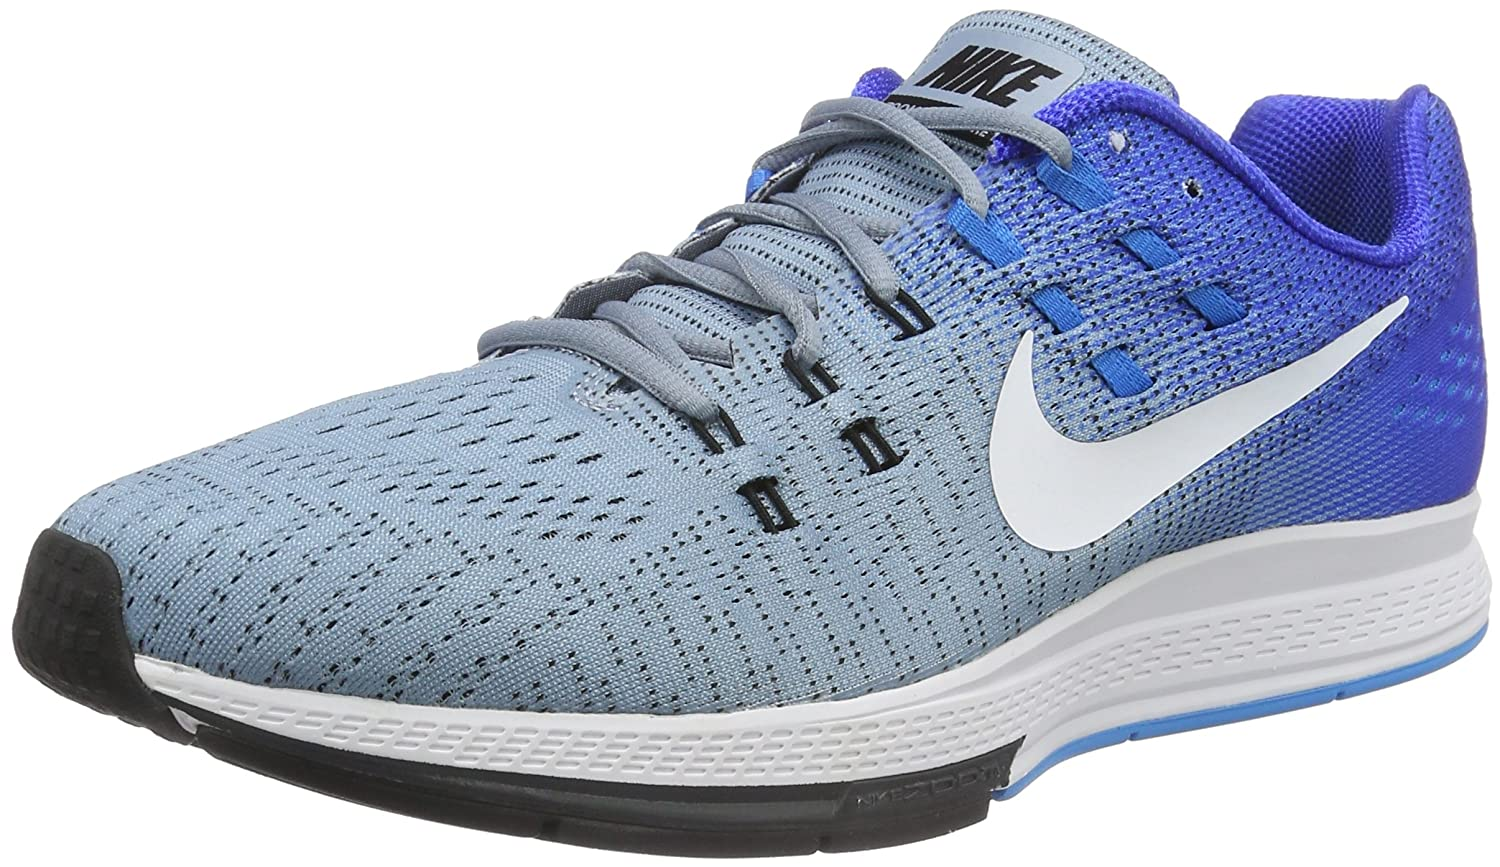 NIKE Mens Air Zoom Structure 19 Running Shoes B008O15D5O 8 D(M) US|Blue Grey/White-Racer Blue-Blue Glow